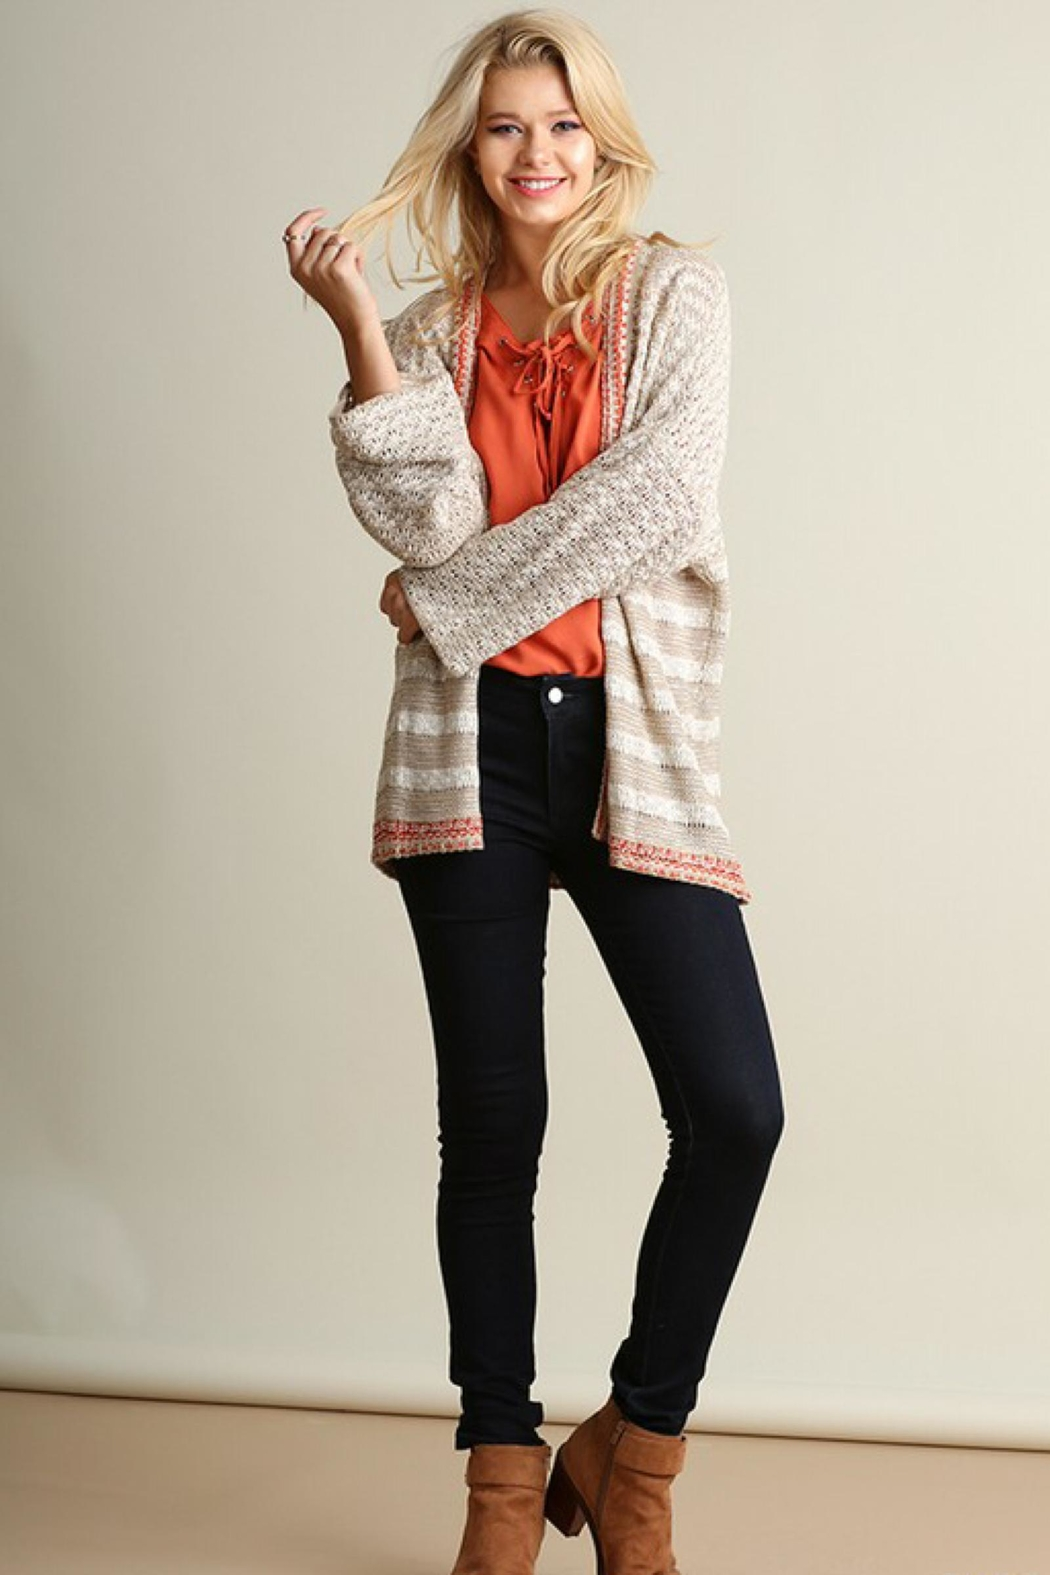 People Outfitter Relaxed-Fit Knit Cardigan - Main Image